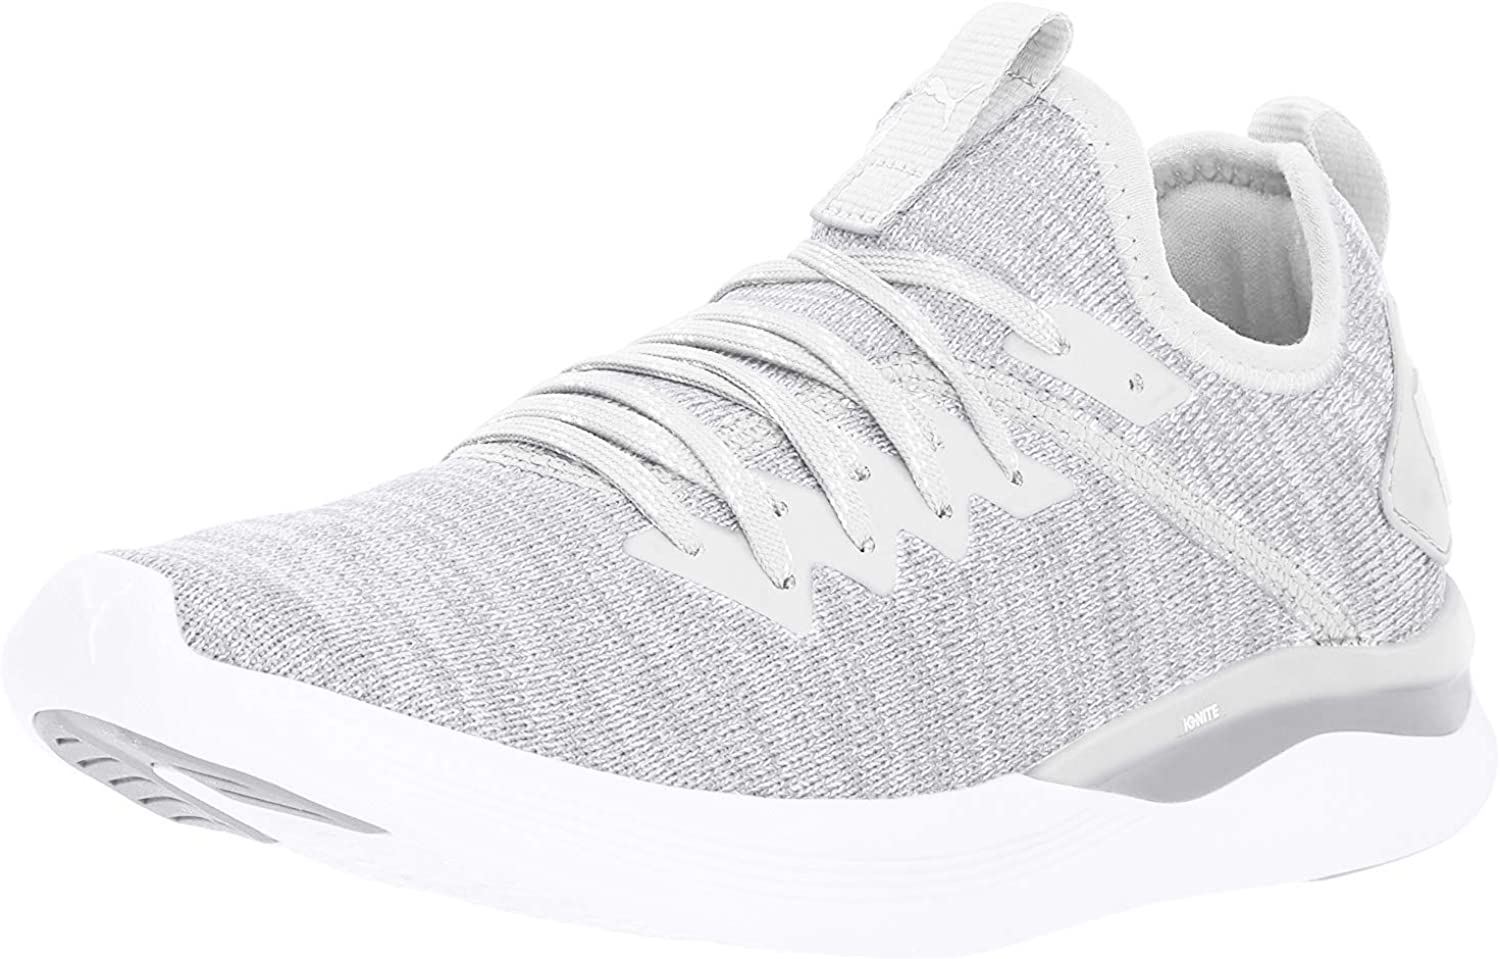 PUMA Women's Ignite Flash Evoknit Sneaker